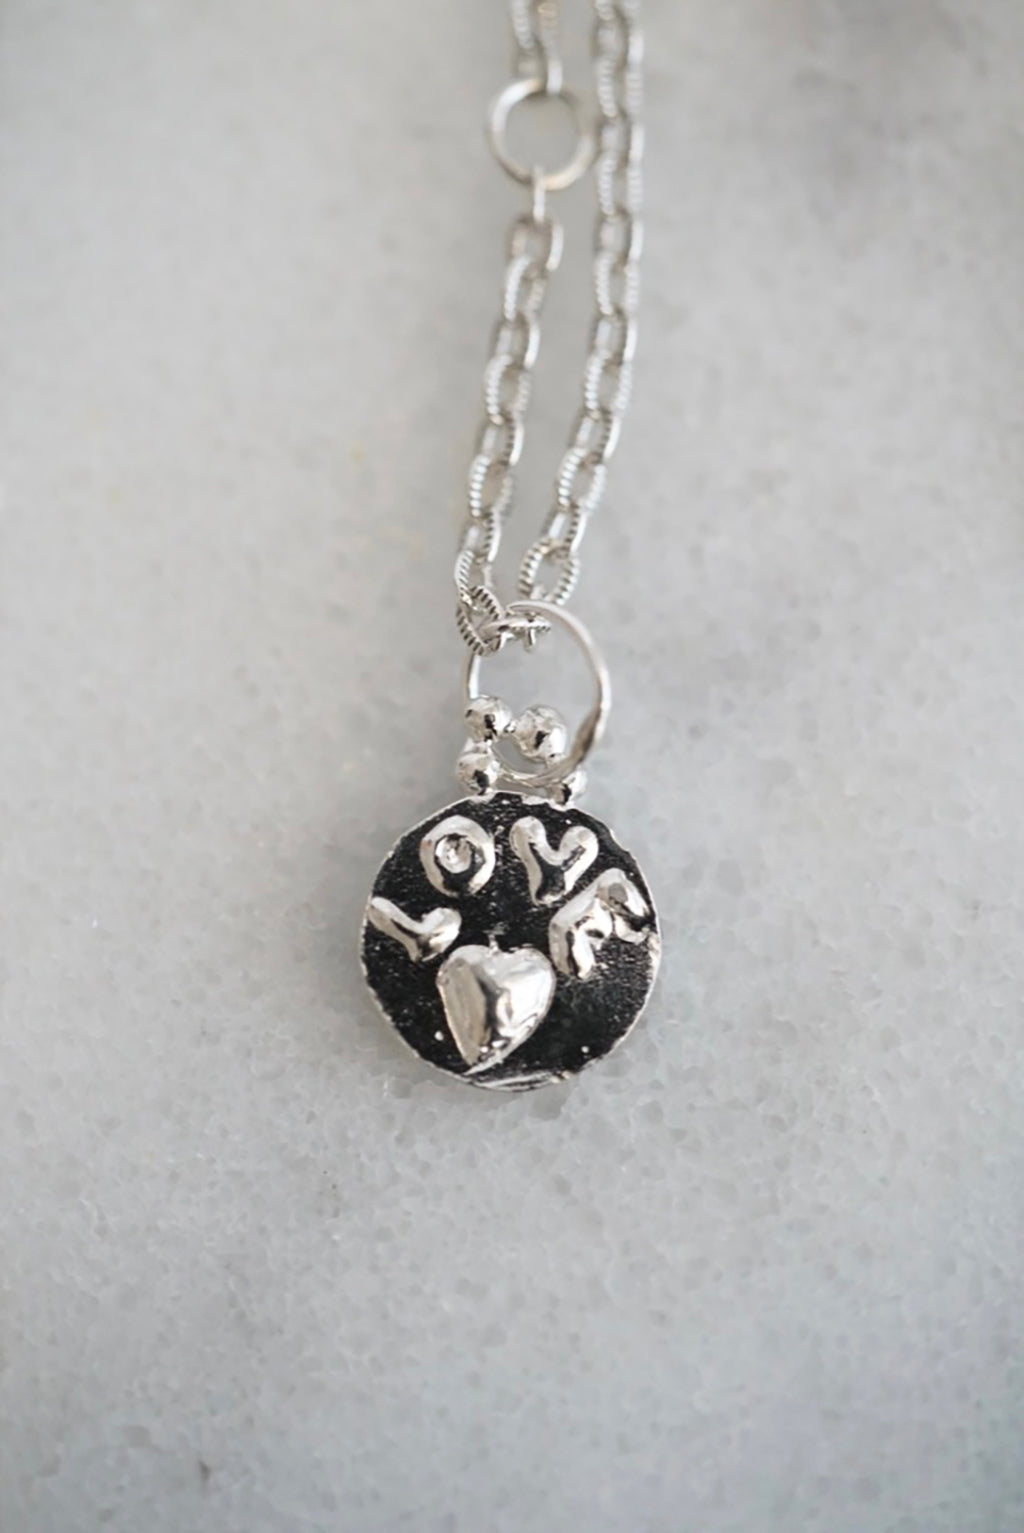 Love medallion necklace in silver